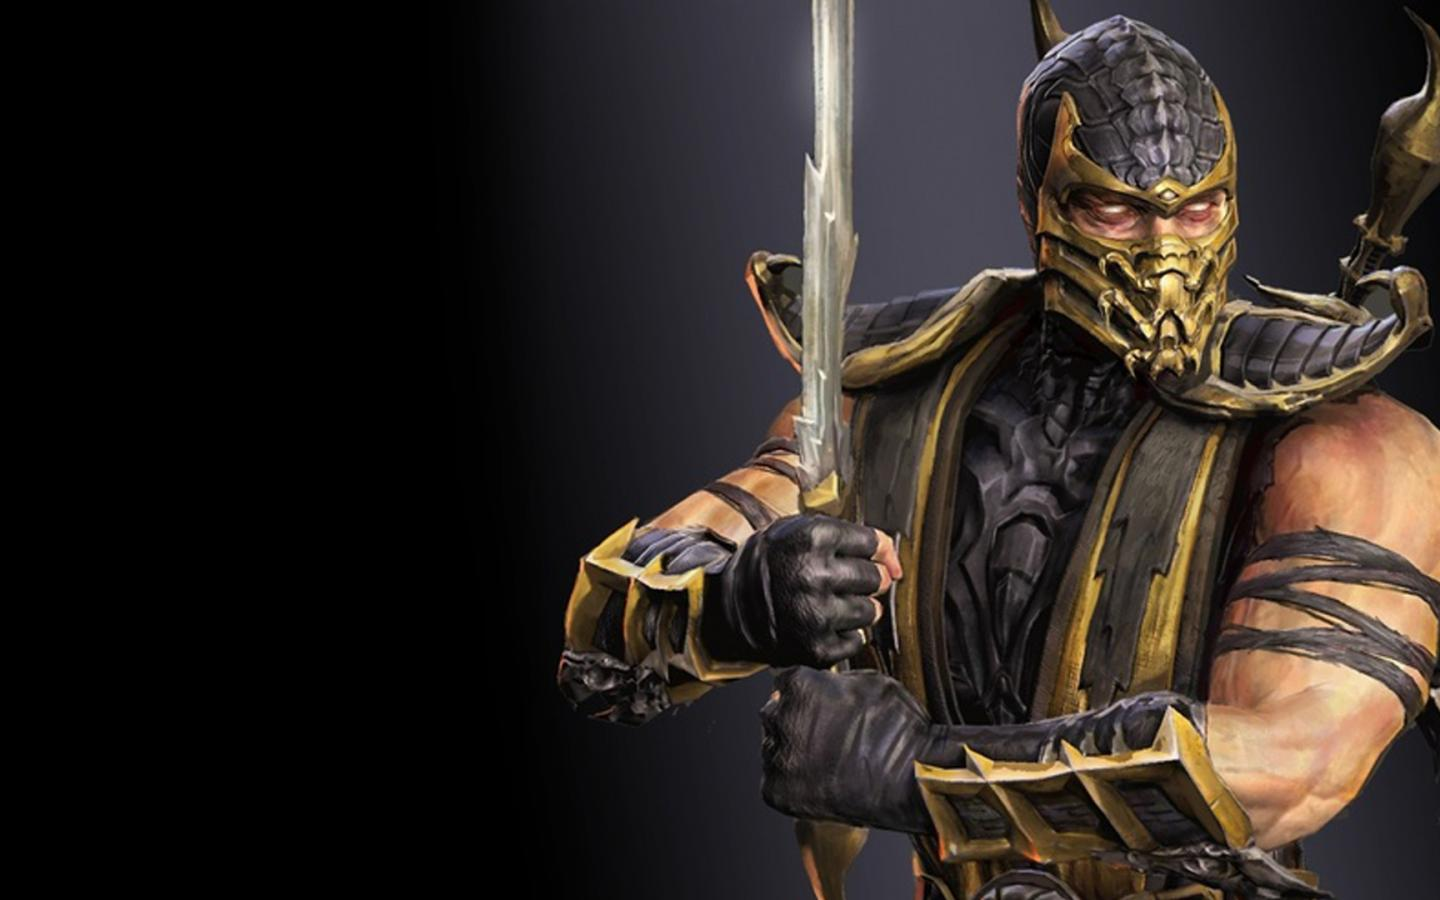 Artistic pictures of scorpion from mortal kombat hd - Mortal kombat scorpion wallpaper ...